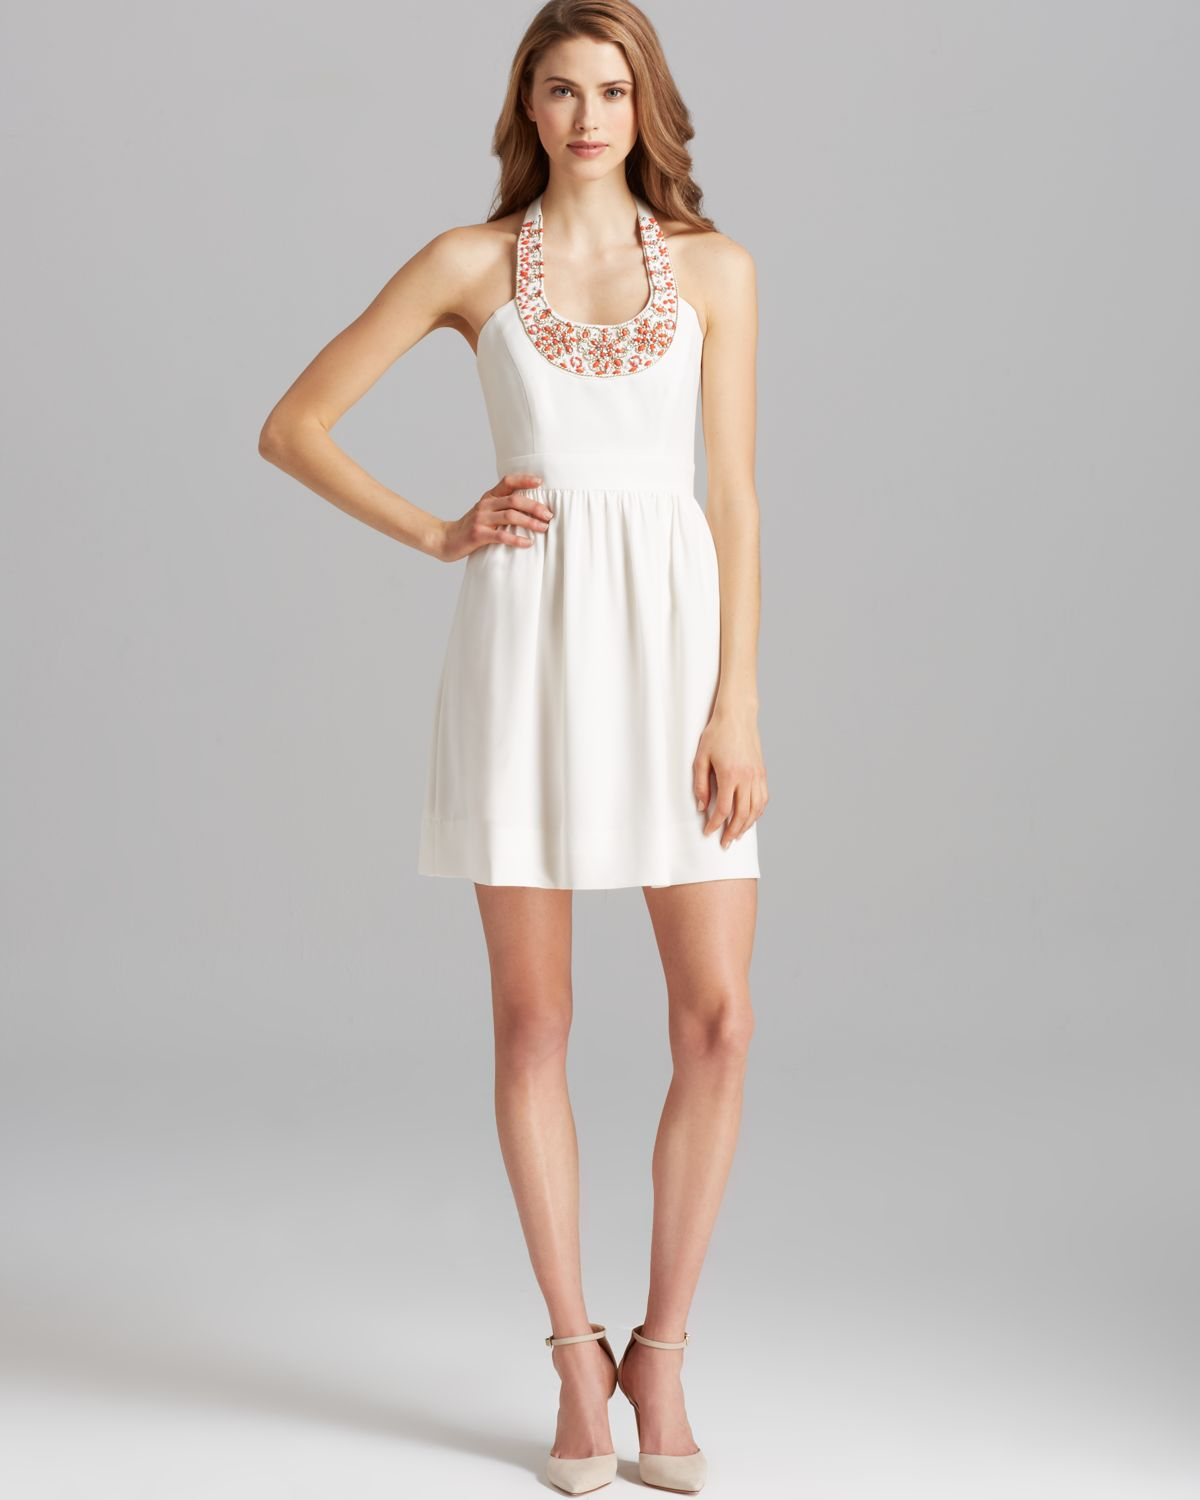 Shoshanna Dress Elenee Beaded Neck Halter in White | Lyst